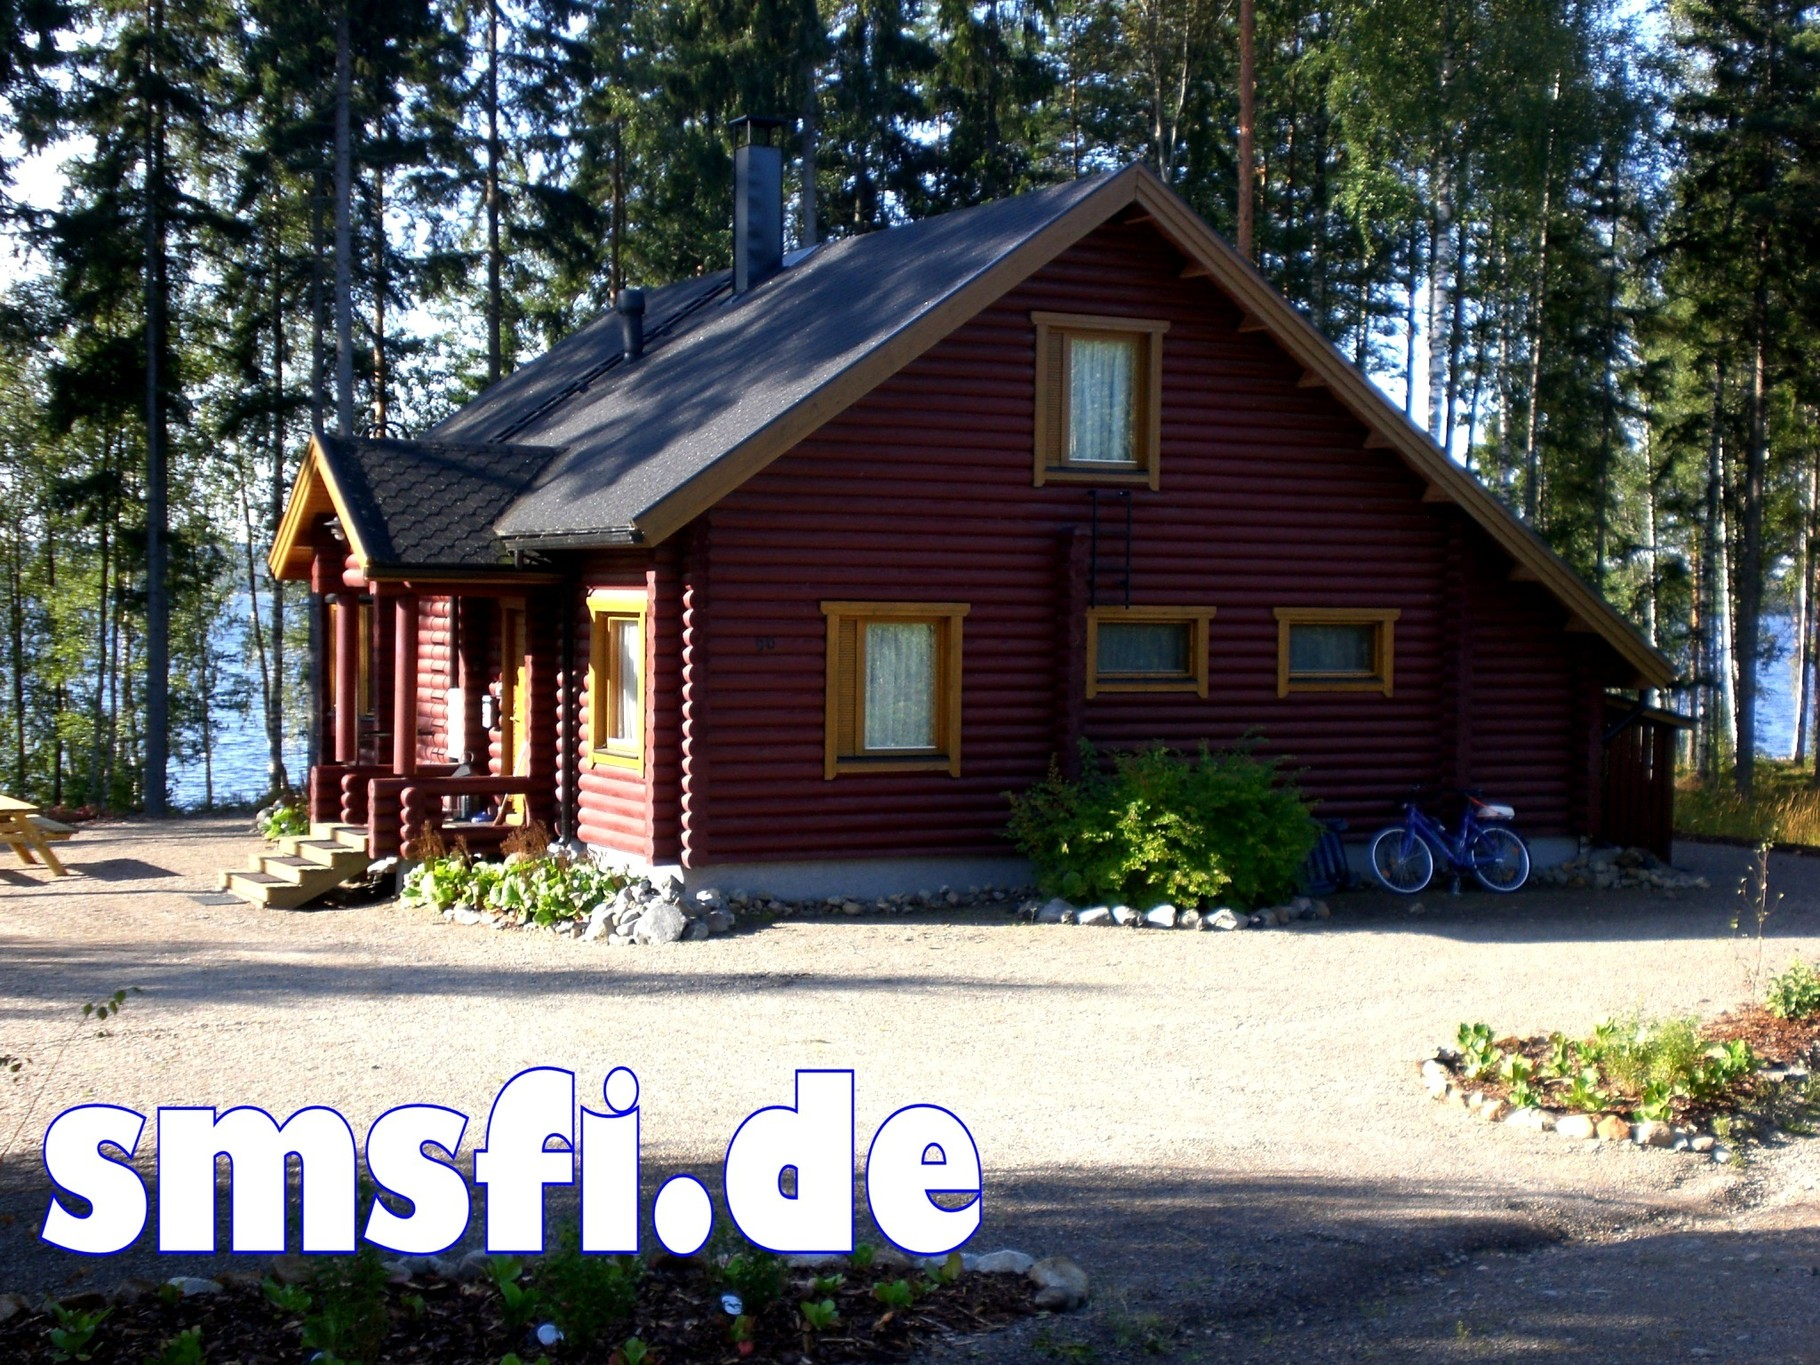 finnland ferienhaus direkt am see ferienhaus direkt am see mieten finnland. Black Bedroom Furniture Sets. Home Design Ideas